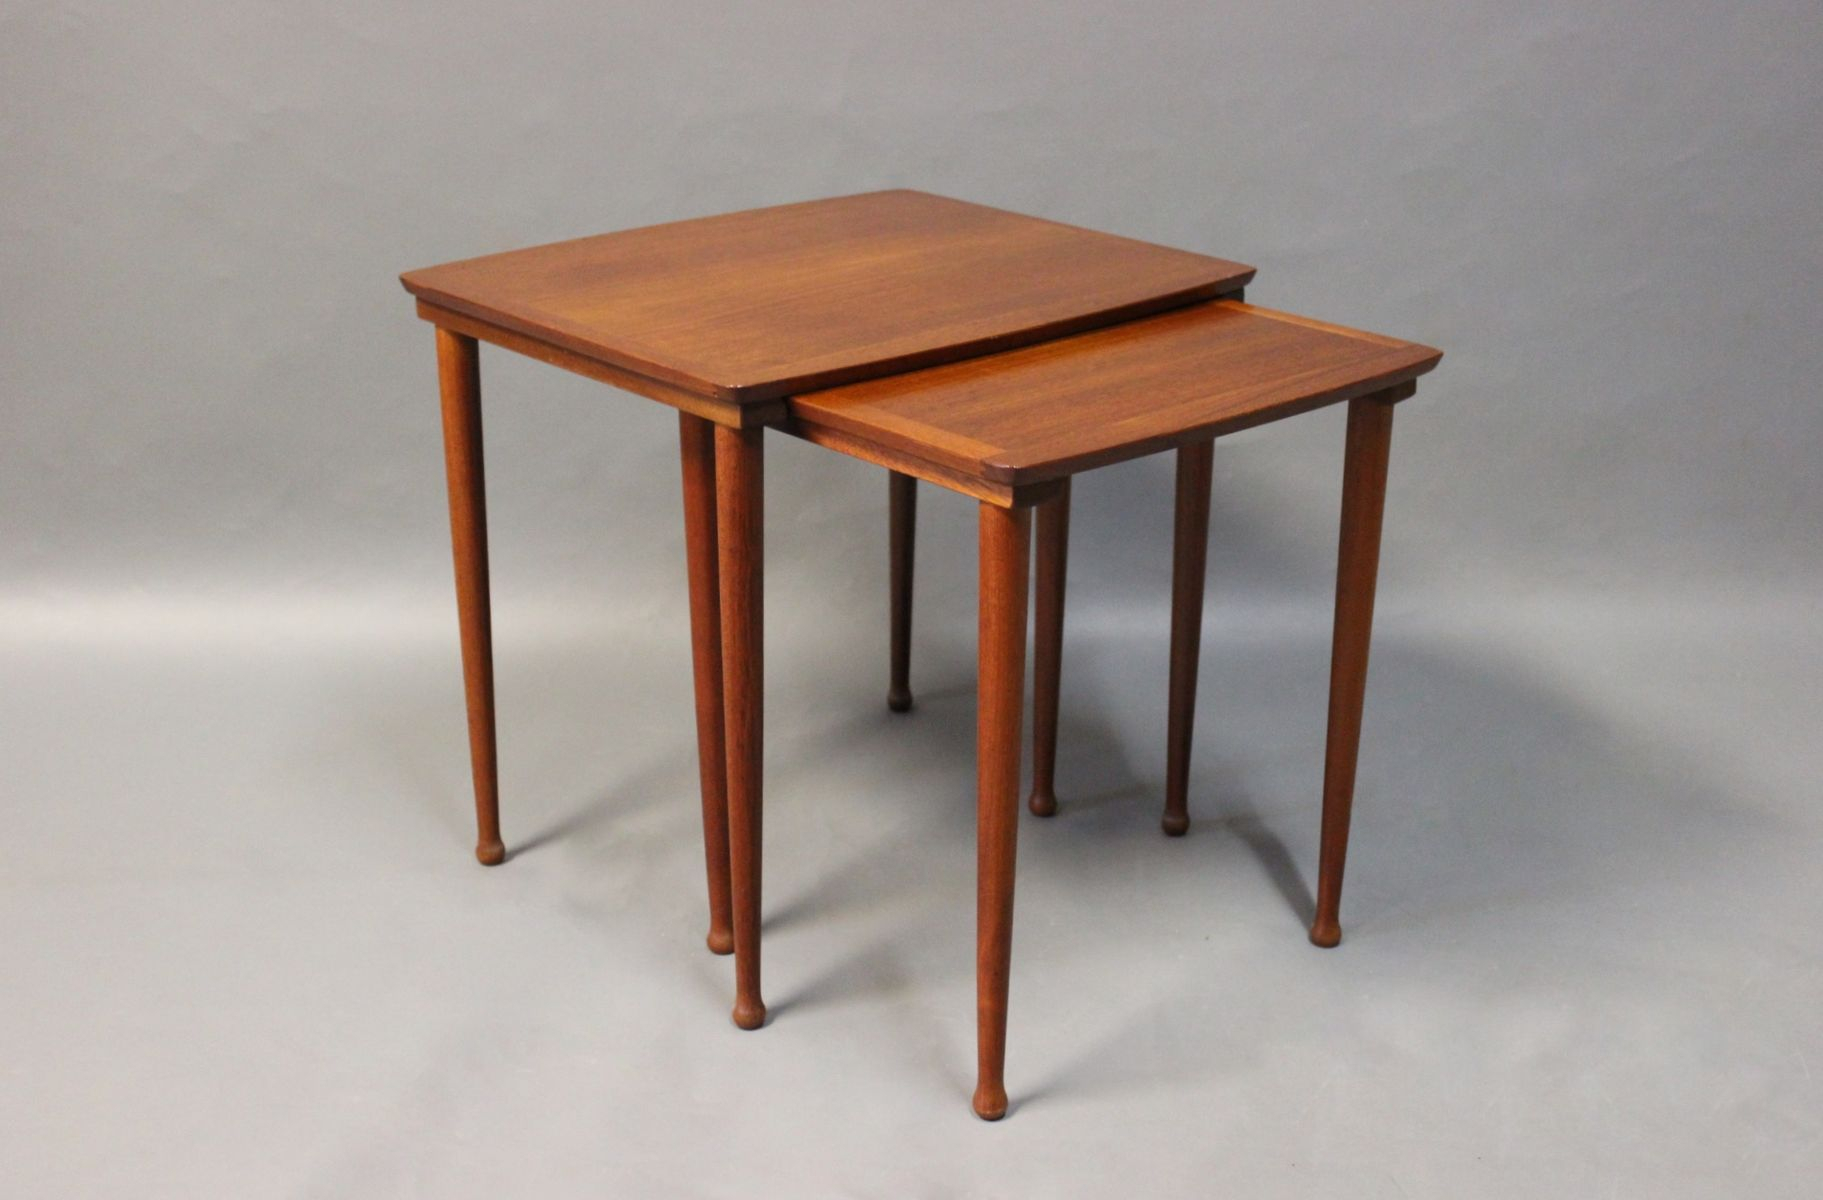 Teak Nesting Tables From Møbelintarsia, 1960S For Sale At Pamono Regarding Intarsia Console Tables (View 26 of 30)